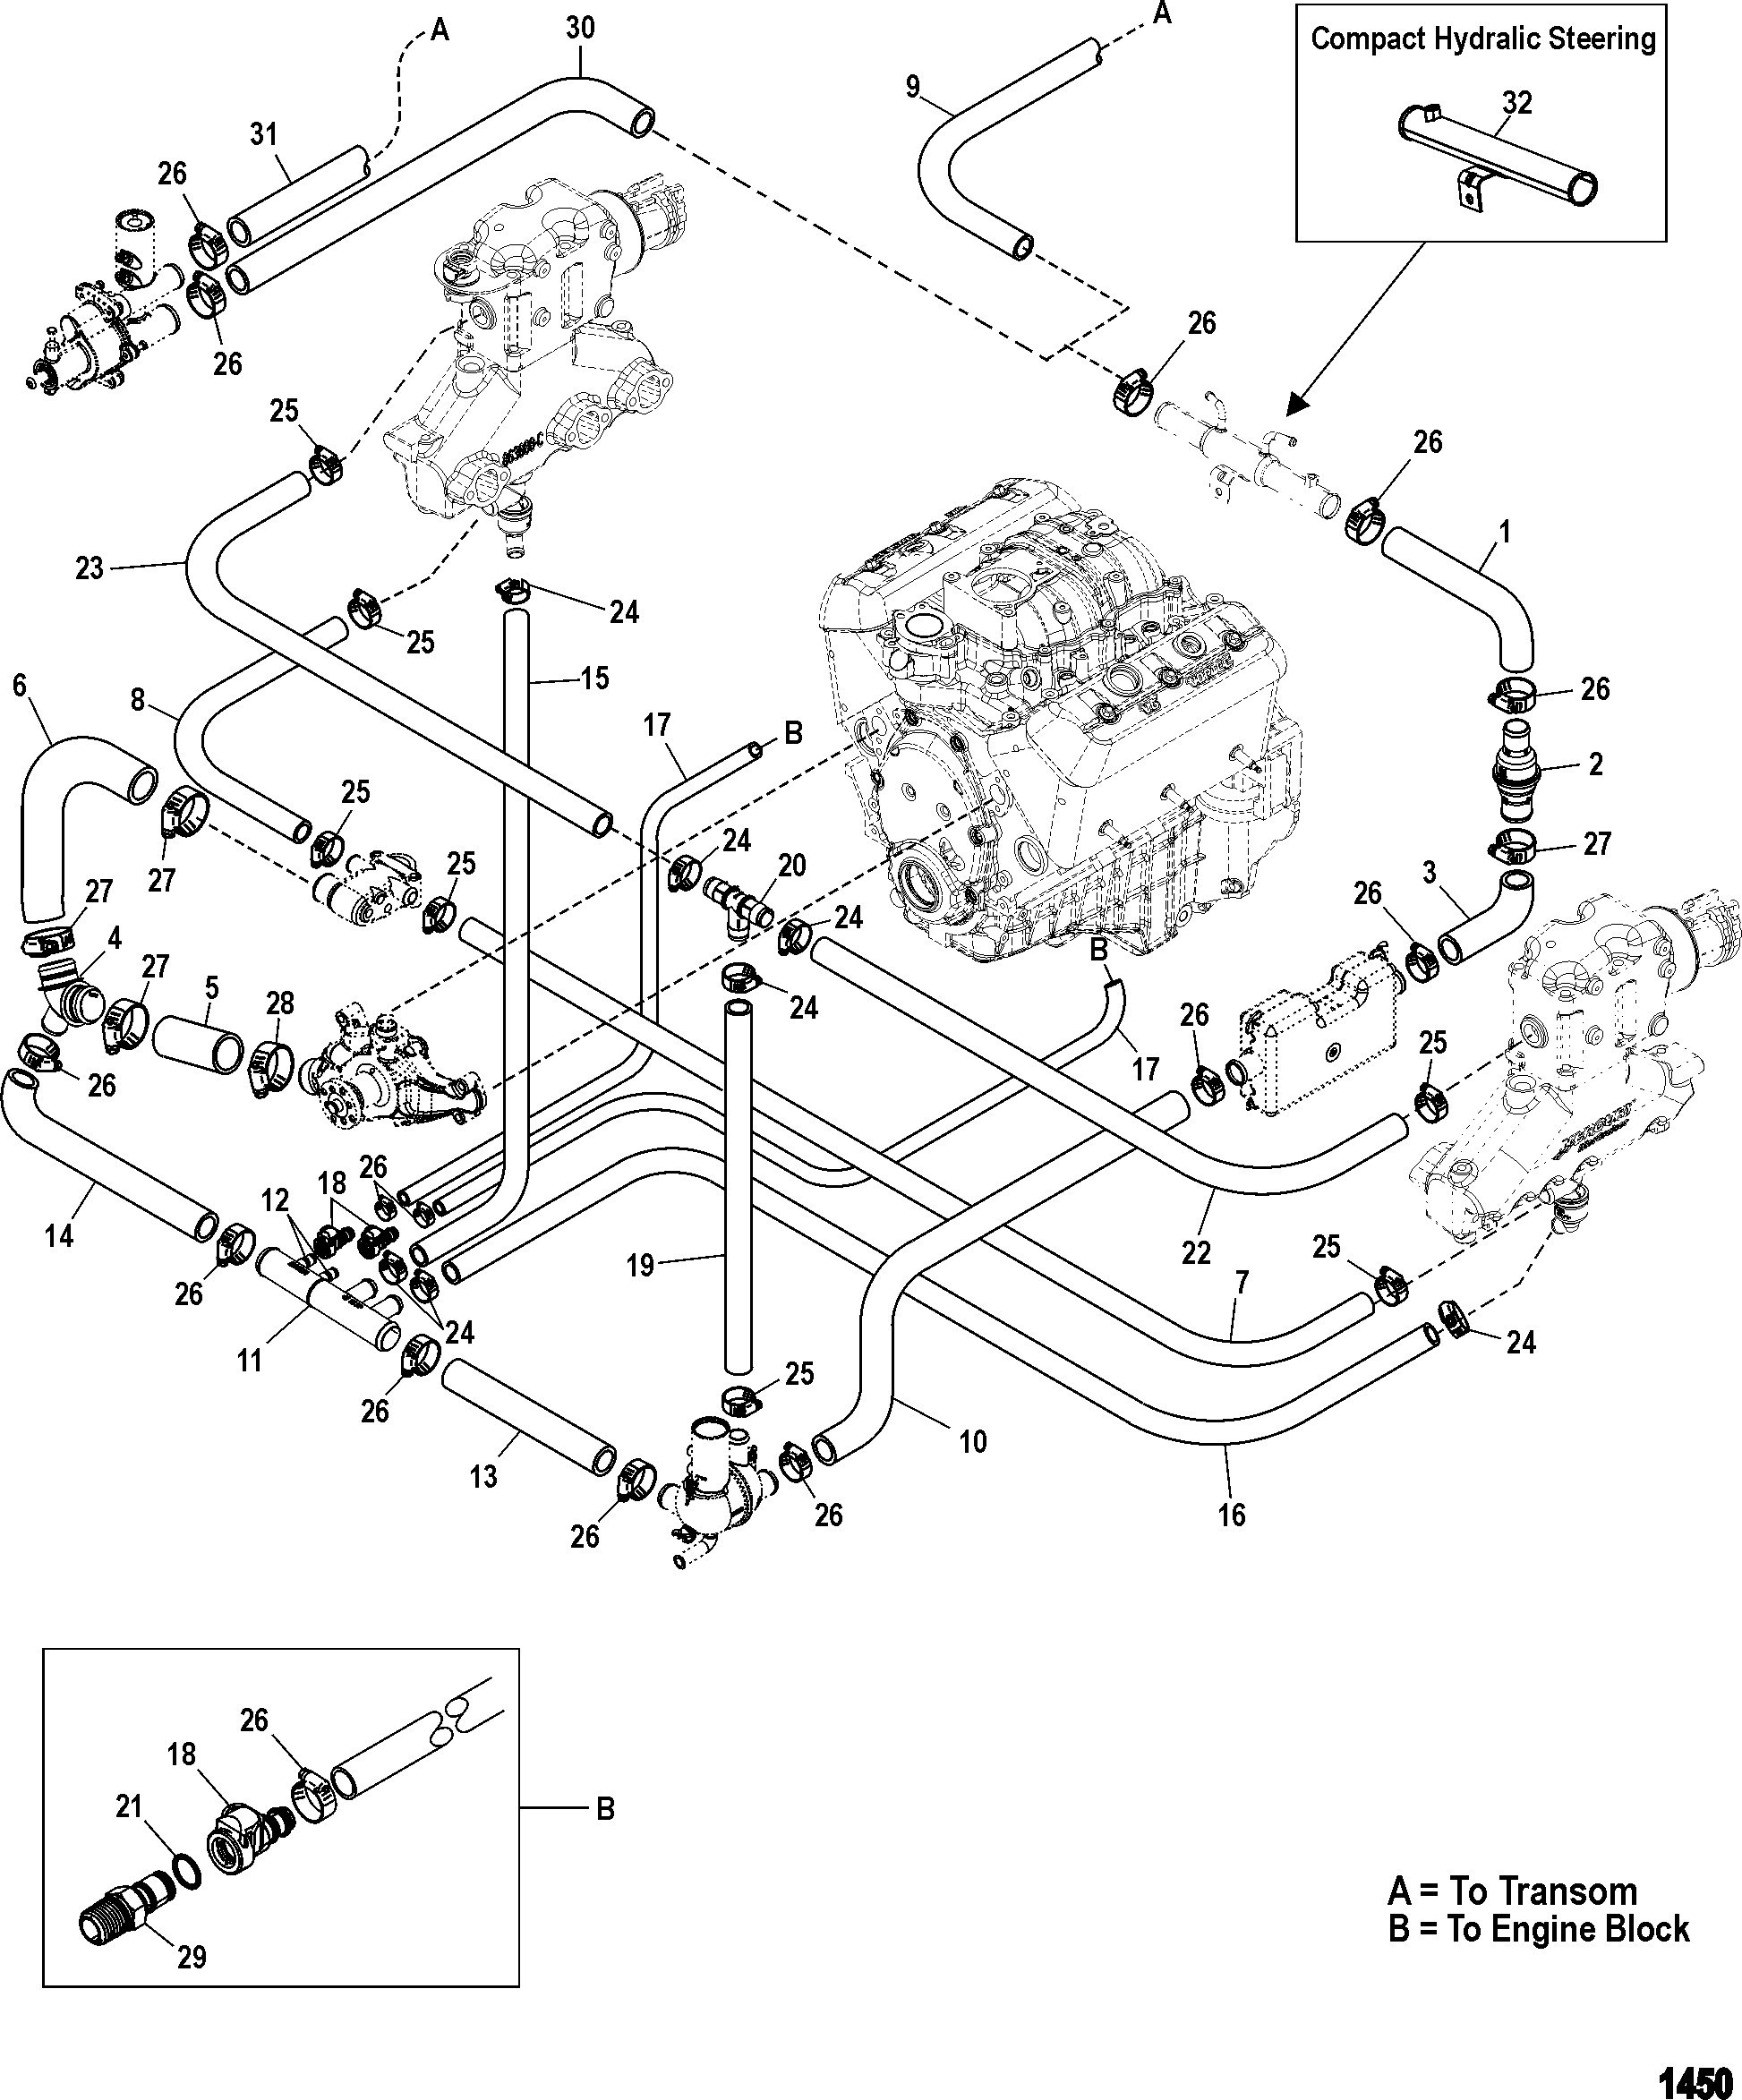 Chevy V6 Engine Parts Diagram Opinions About Wiring Toyota 3vze Ignitor Vortec Worksheet And U2022 Rh Swagcentral Co 38 2003 Impala 3 4